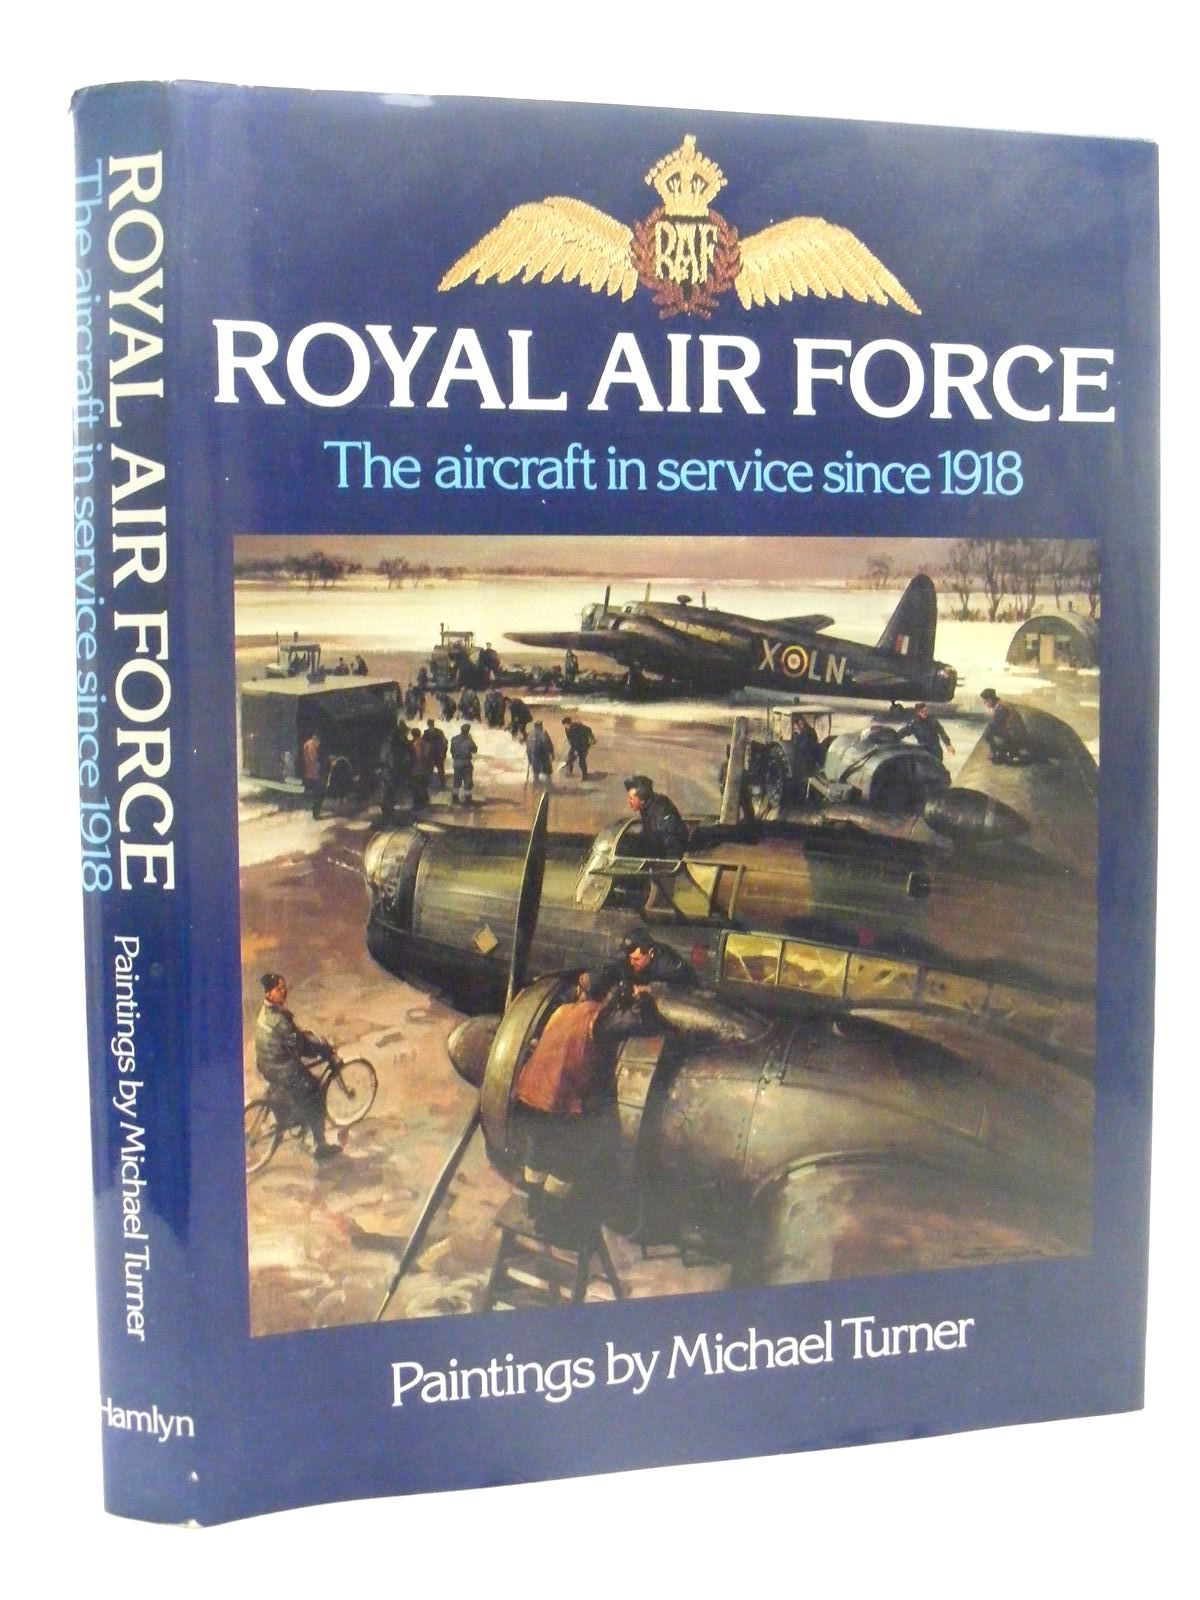 Photo of ROYAL AIR FORCE THE AIRCRAFT IN SERVICE SINCE 1918 written by Bowyer, Chaz illustrated by Turner, Michael published by Hamlyn (STOCK CODE: 1610337)  for sale by Stella & Rose's Books